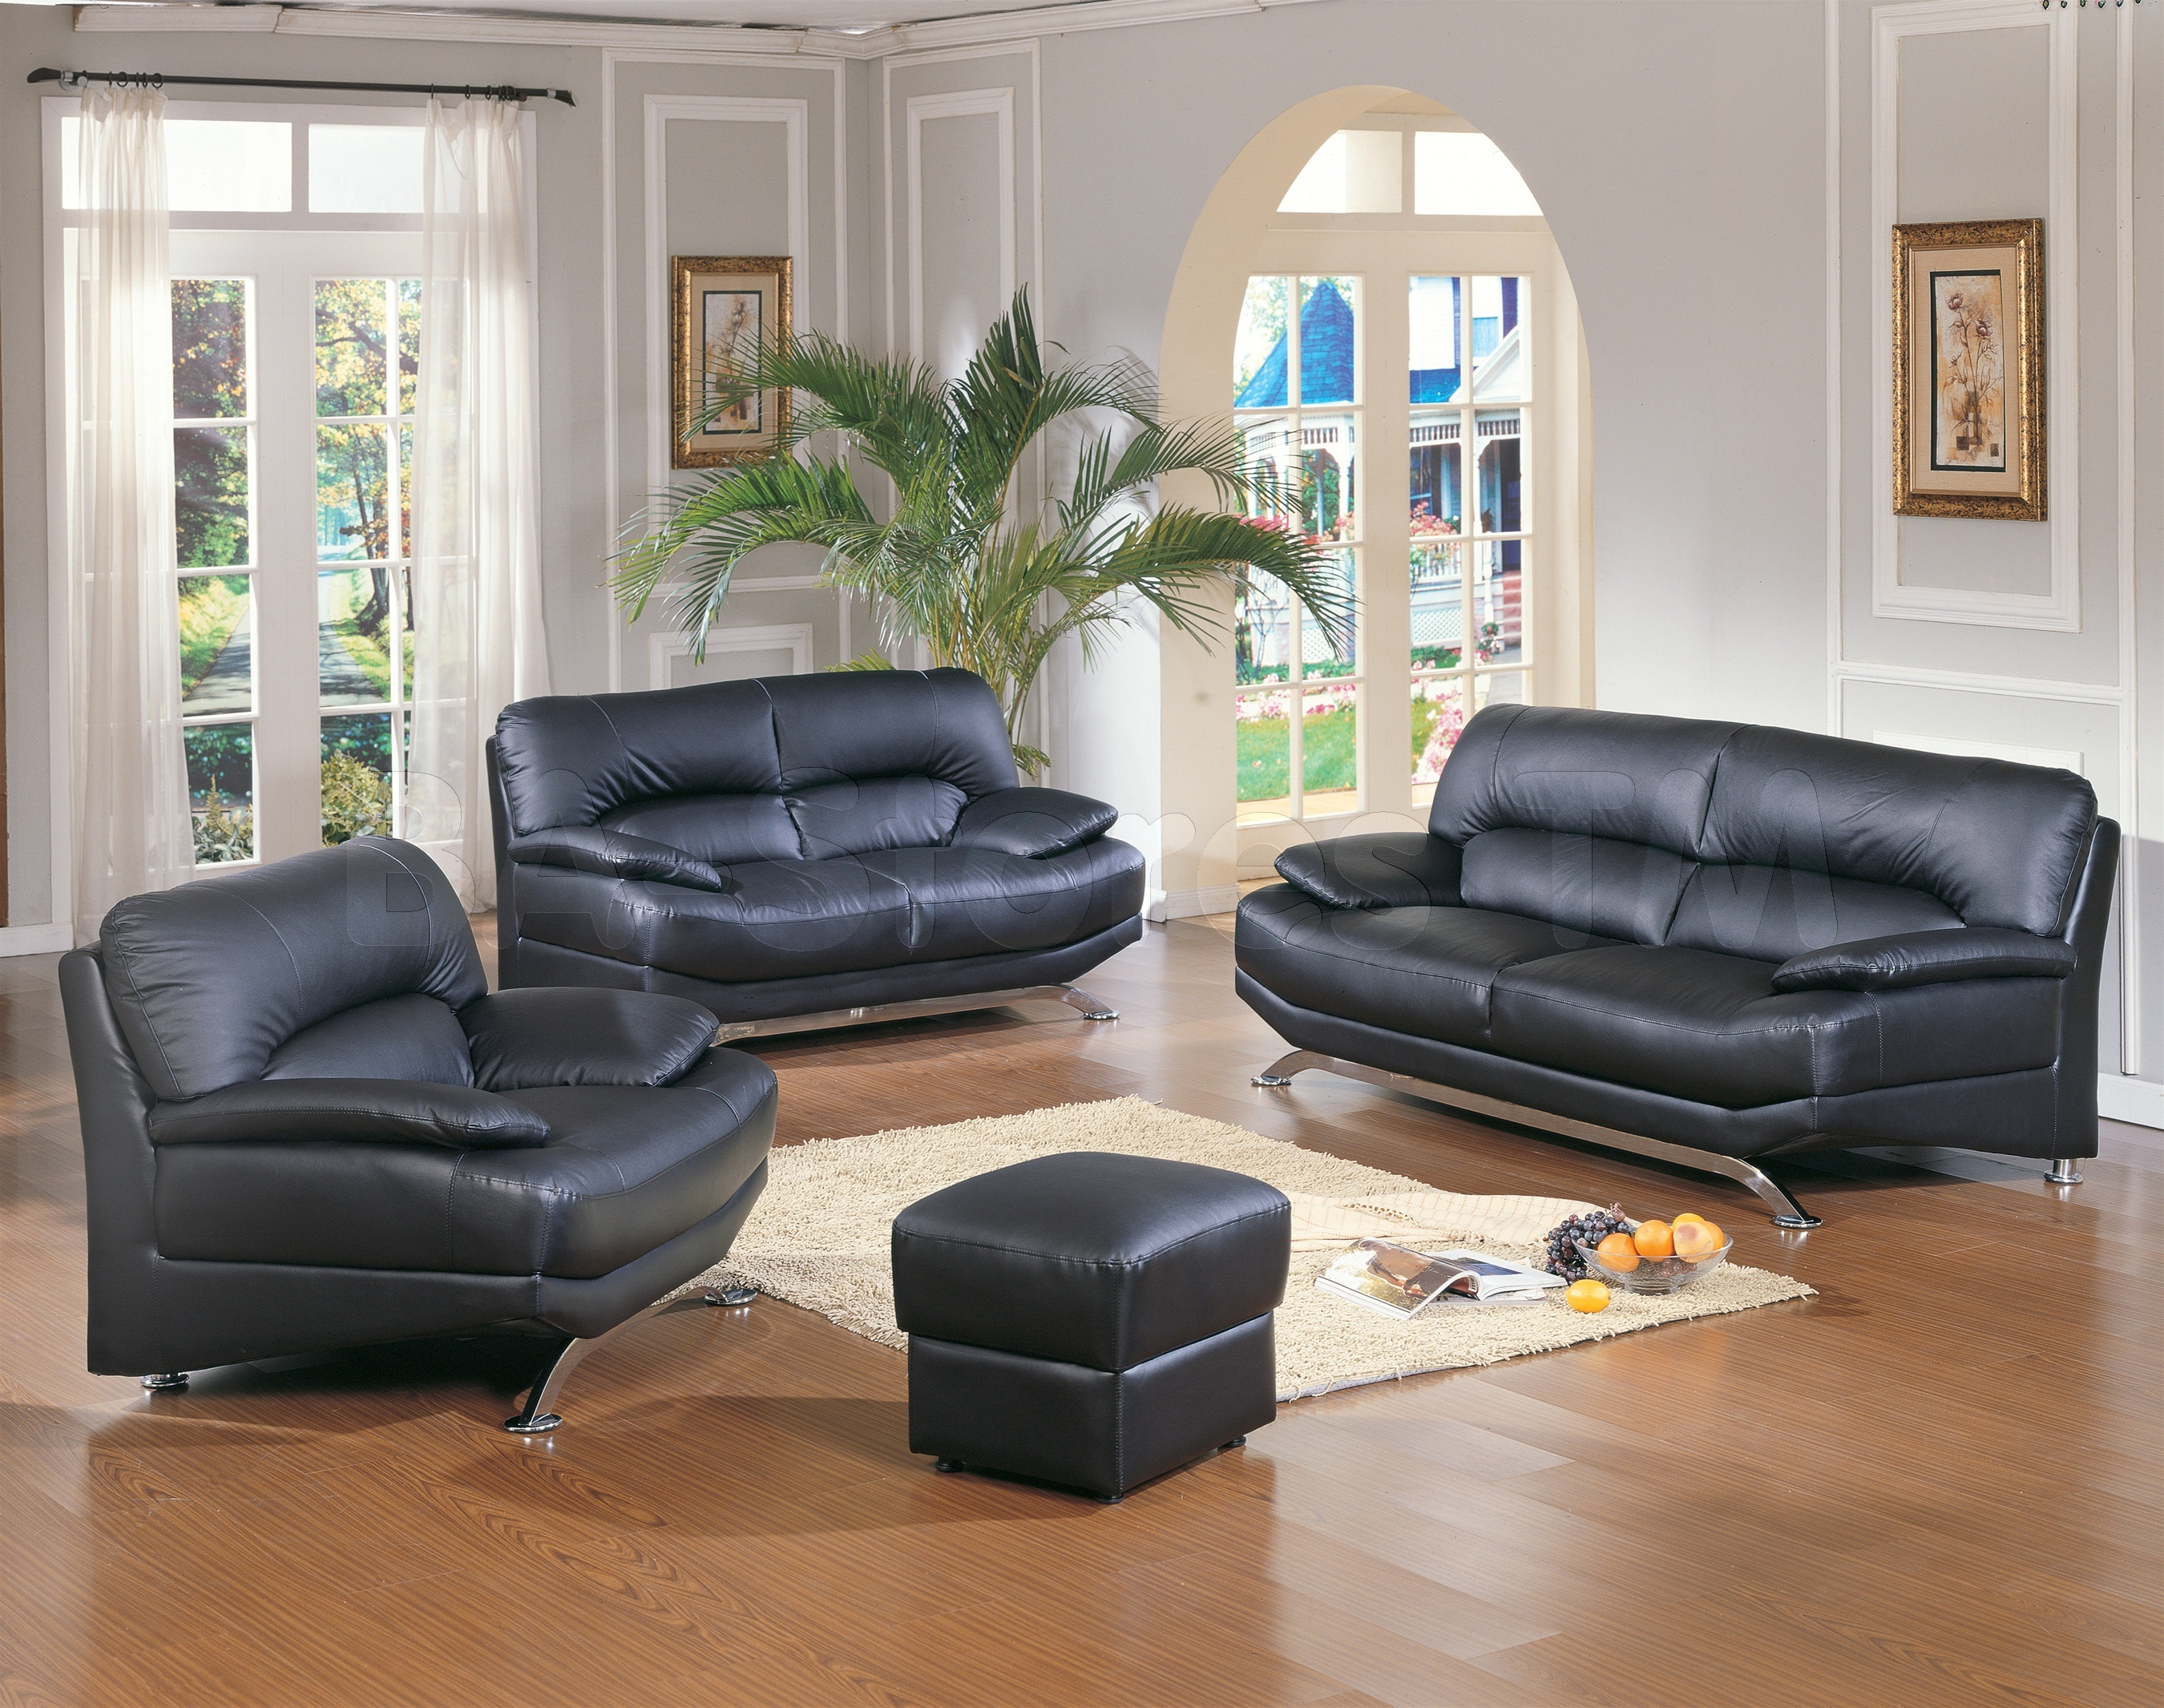 Rooms With Black Leather Sofa Sofa Brownsvilleclaimhelp